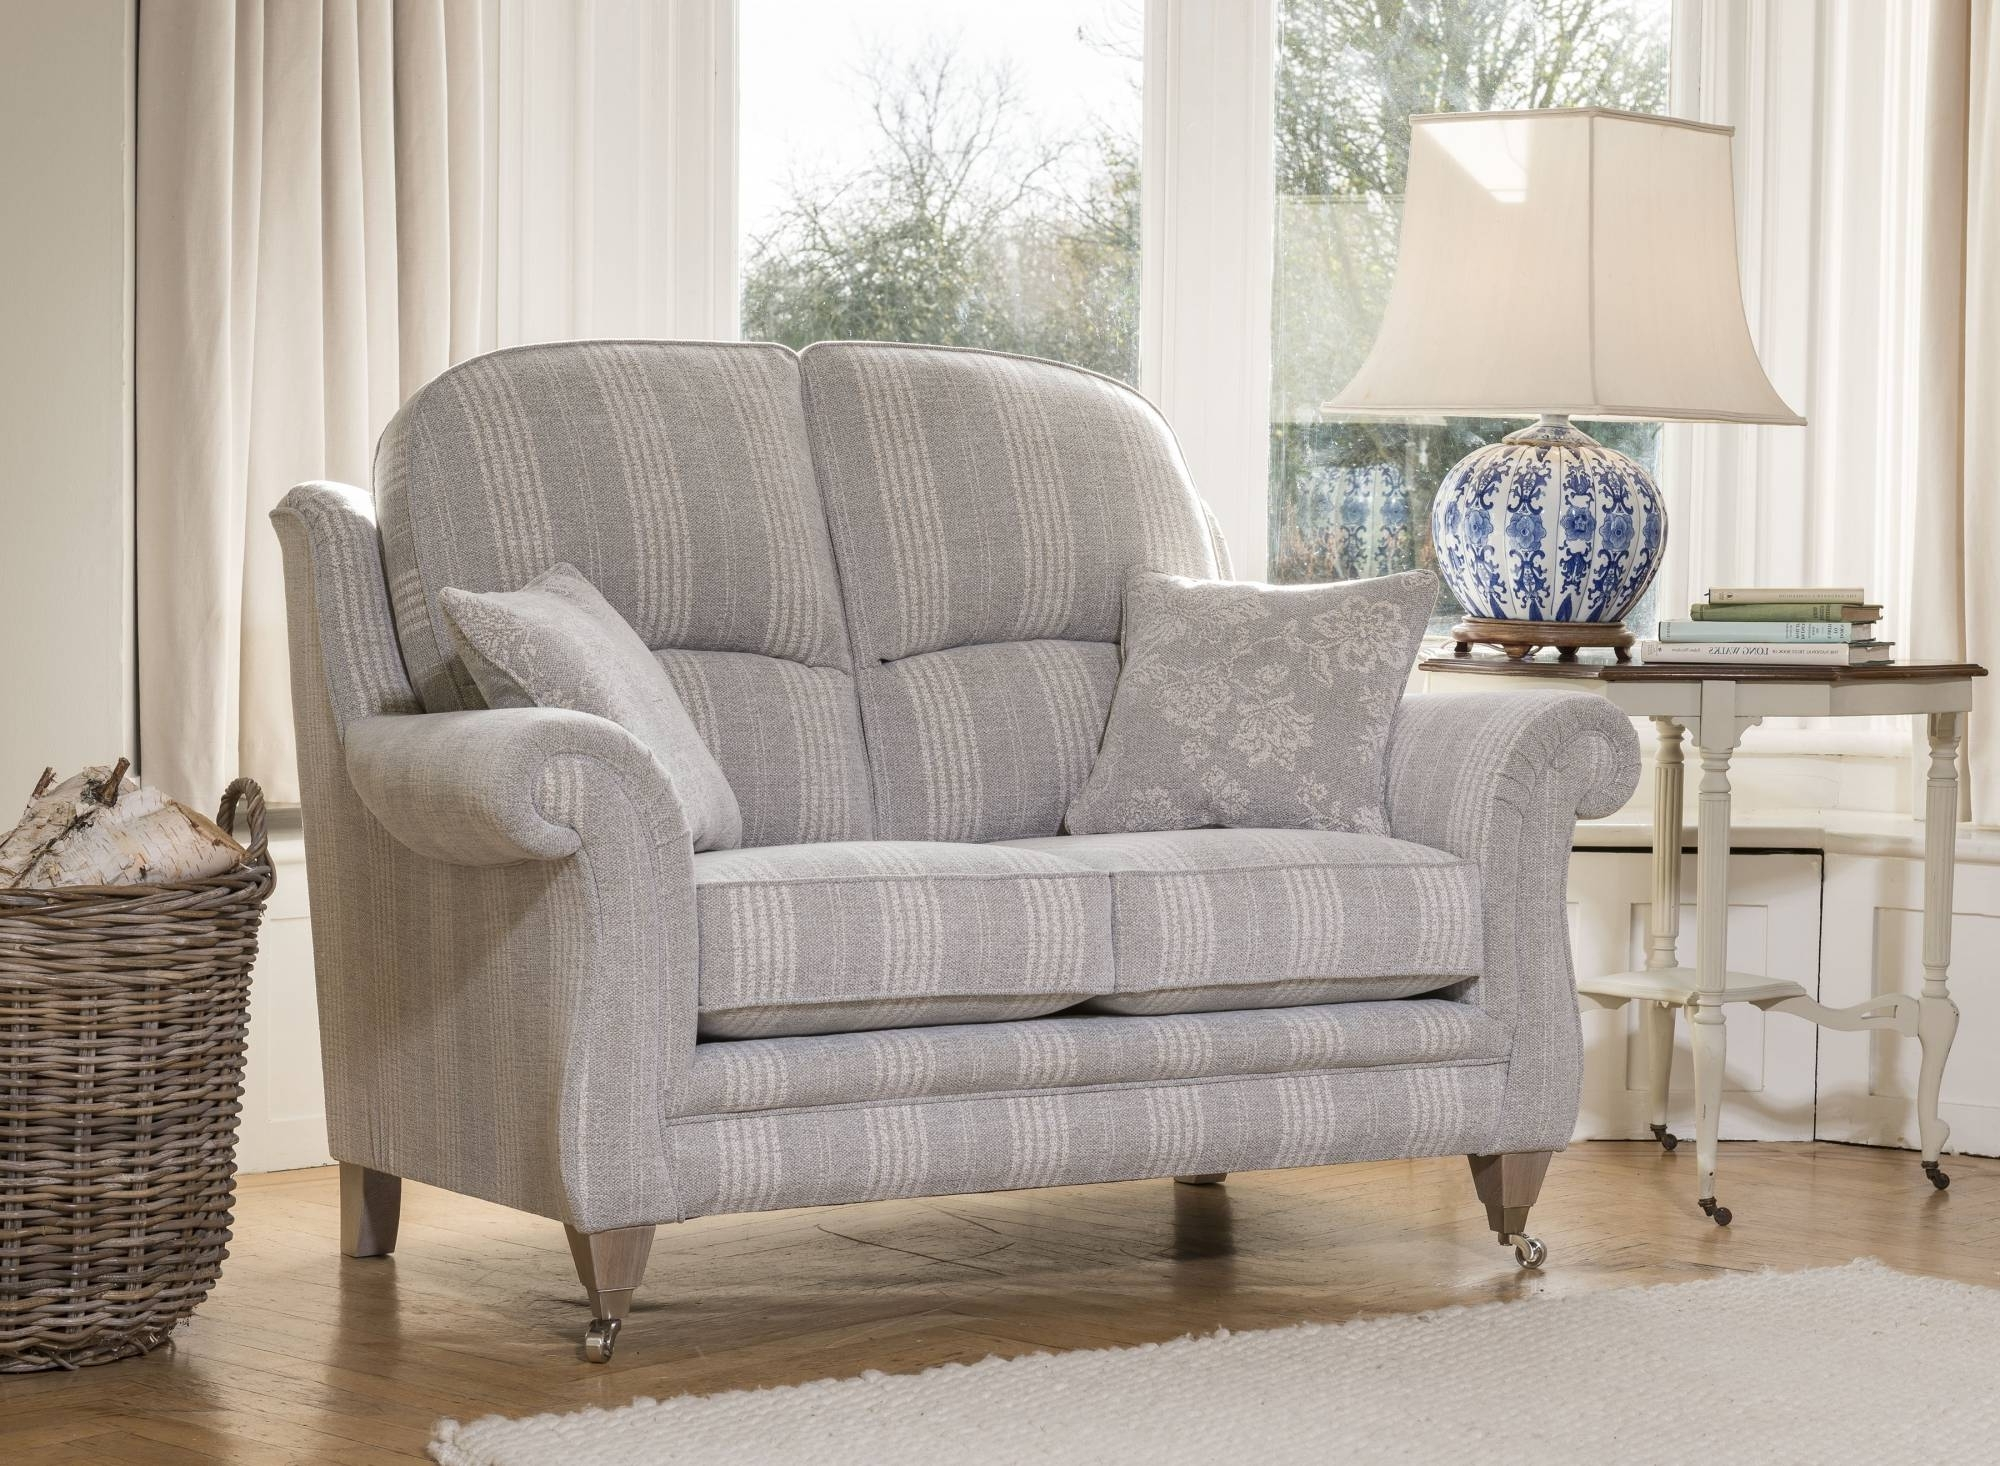 Newest Lovely Small 2 Seater Sofa 11 On Living Room Sofa Ideas With Small For Small 2 Seater Sofas (View 15 of 15)